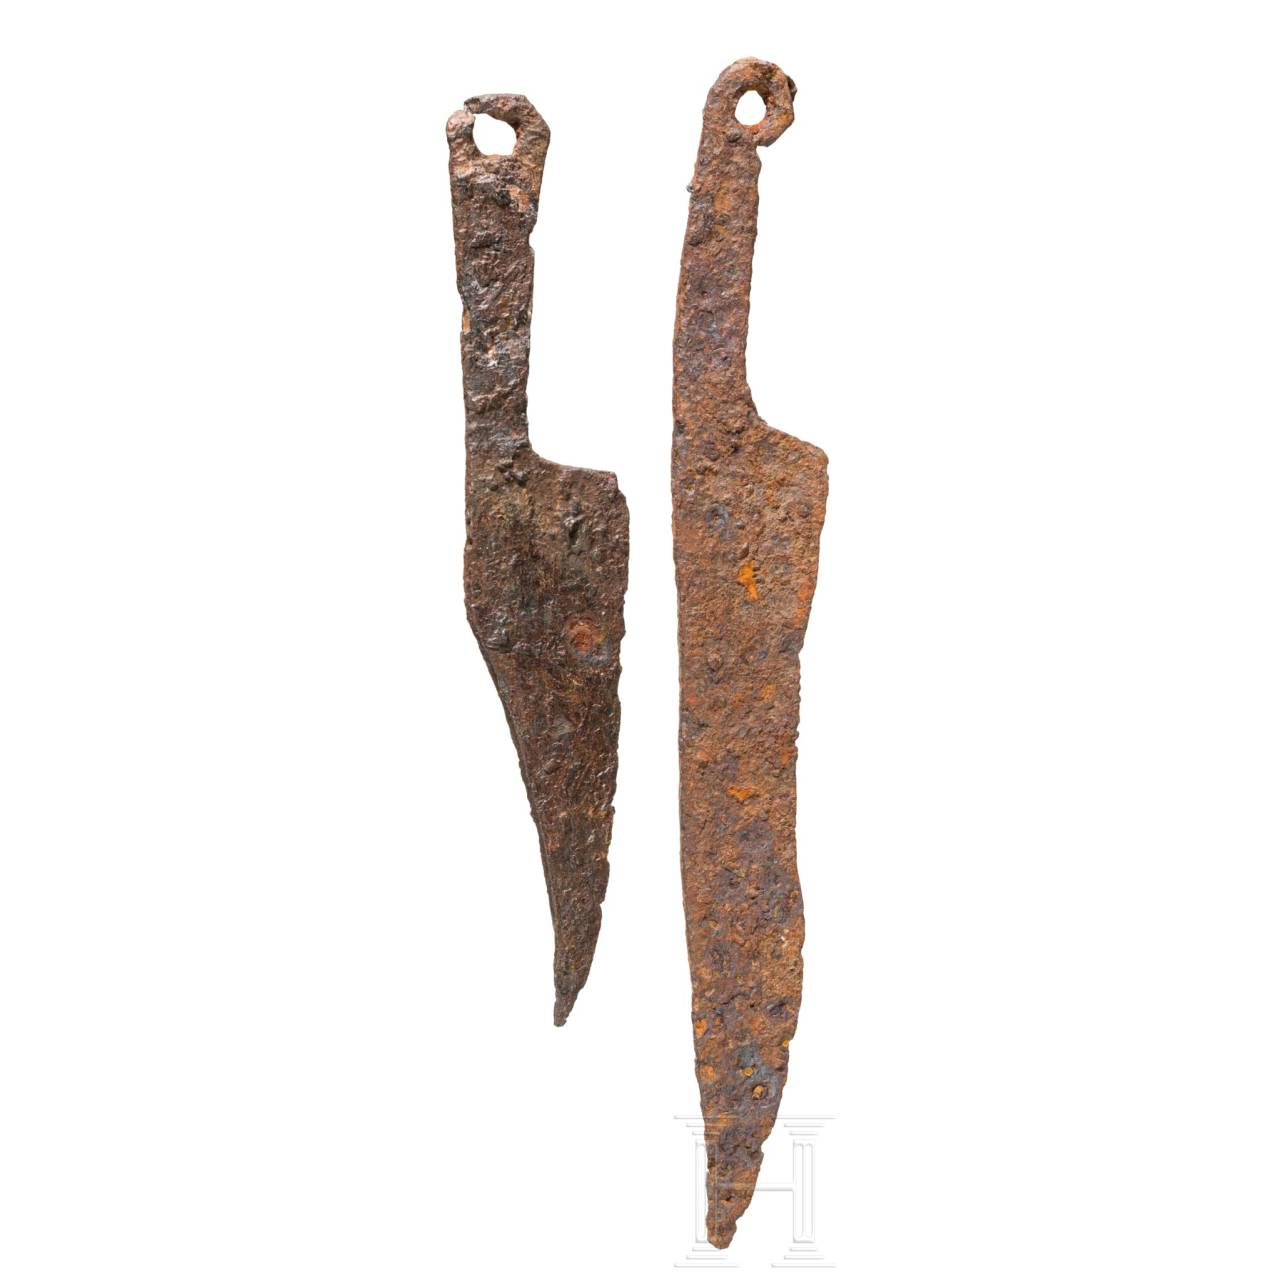 Two Celtic knives, 2nd - 1st century B.C.